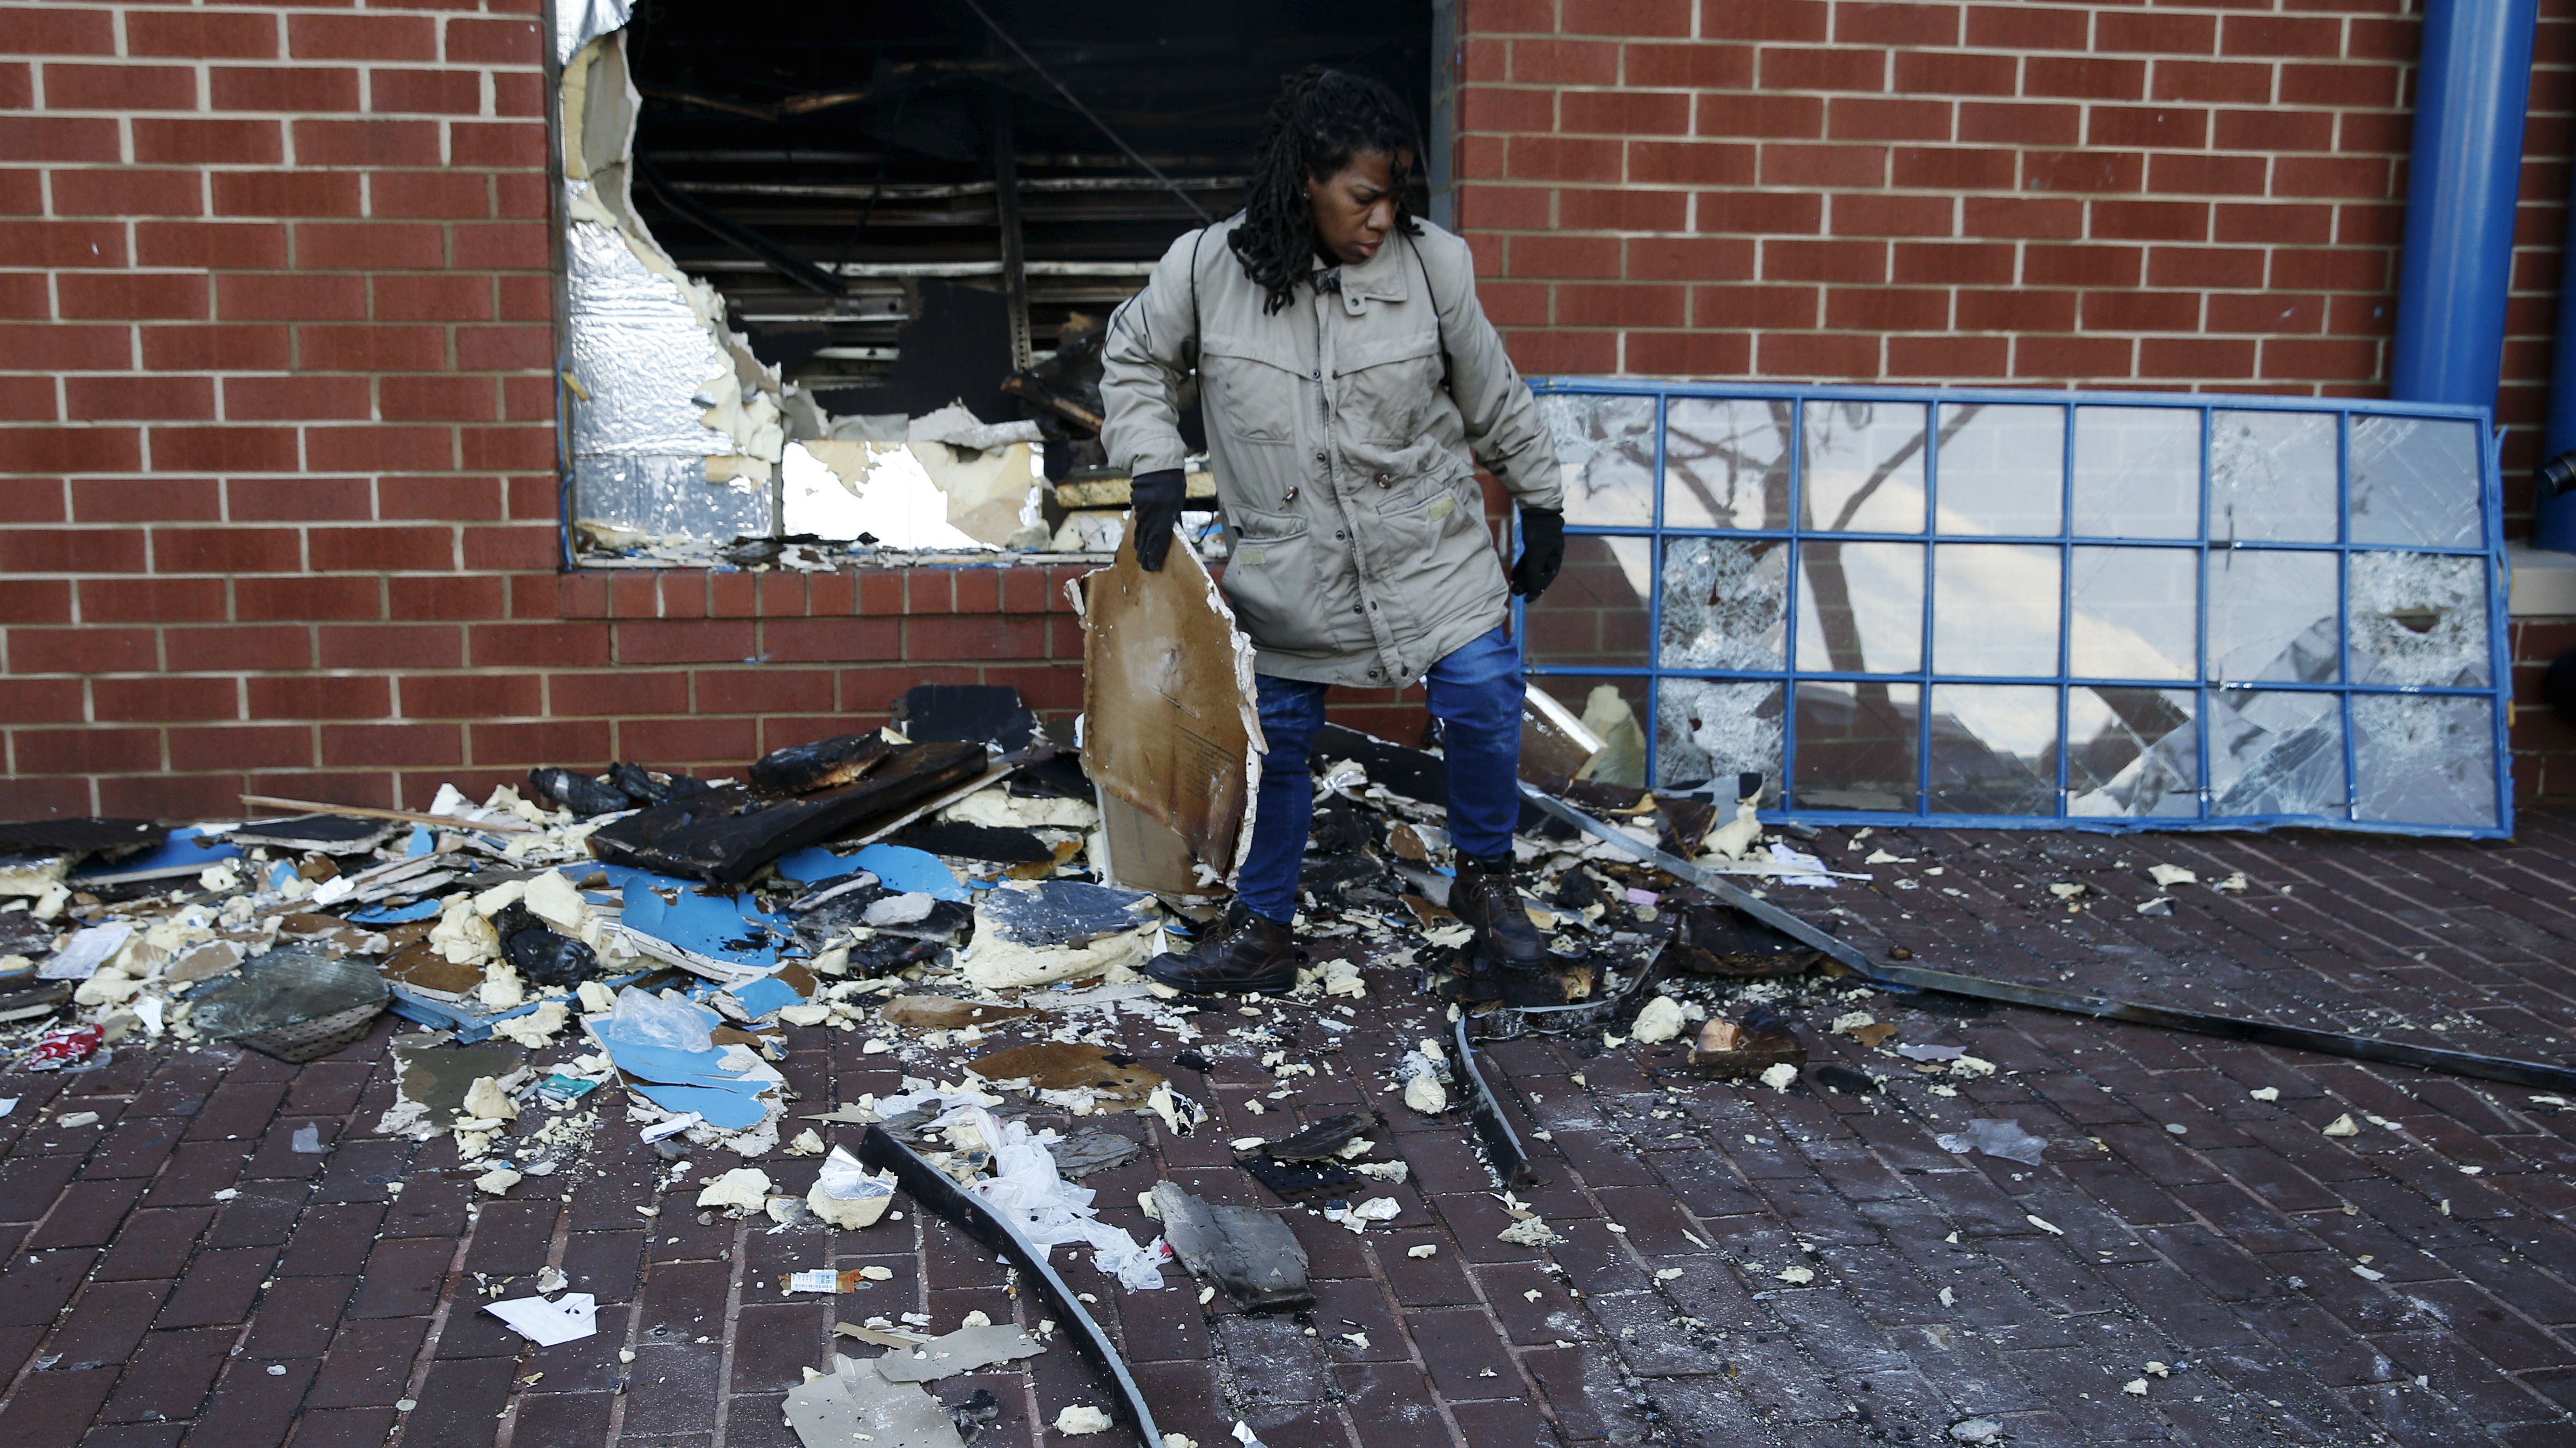 A woman cleans up a CVS store that was looted and set on fire during clashes with police on Monday in Baltimore, Maryland April 28, 2015. Baltimore erupted in violence on Monday as hundreds of rioters looted stores, burned buildings and at least 15 police officers were injured following the funeral of a 25-year-old black man who died after suffering a spinal injury in police custody. The riots broke out blocks from where the funeral of Freddie Gray took place and spread through much of west Baltimore.  REUTERS/Shannon Stapleton - RTX1AMY9